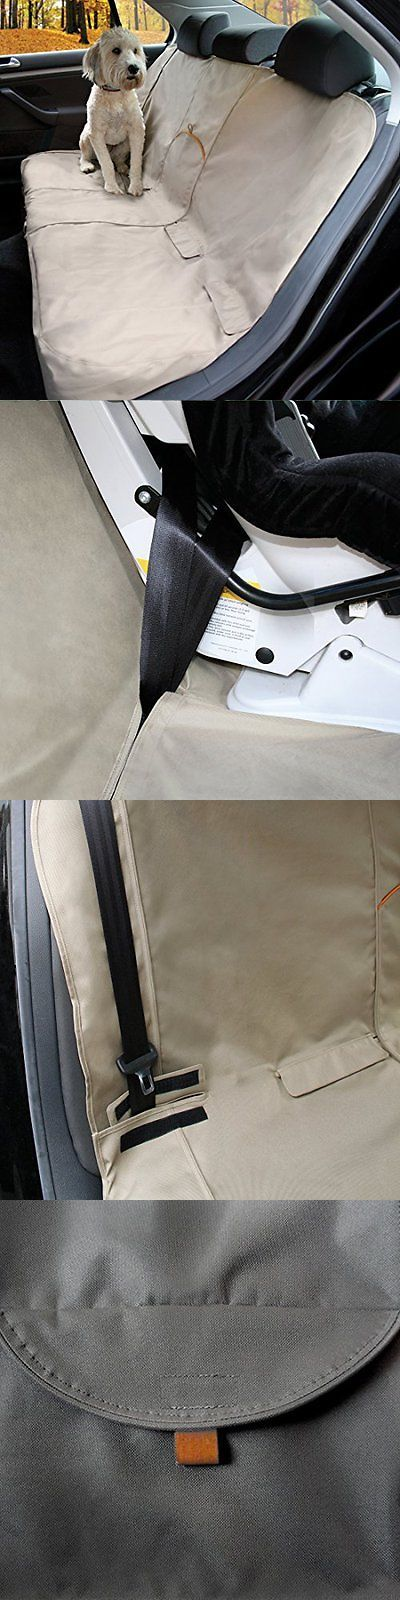 Car Seat Covers 117426: Kurgo Waterproof Car Bench Seat Cover For Dogs, Hampton Sand Khaki New BUY IT NOW ONLY: $45.48